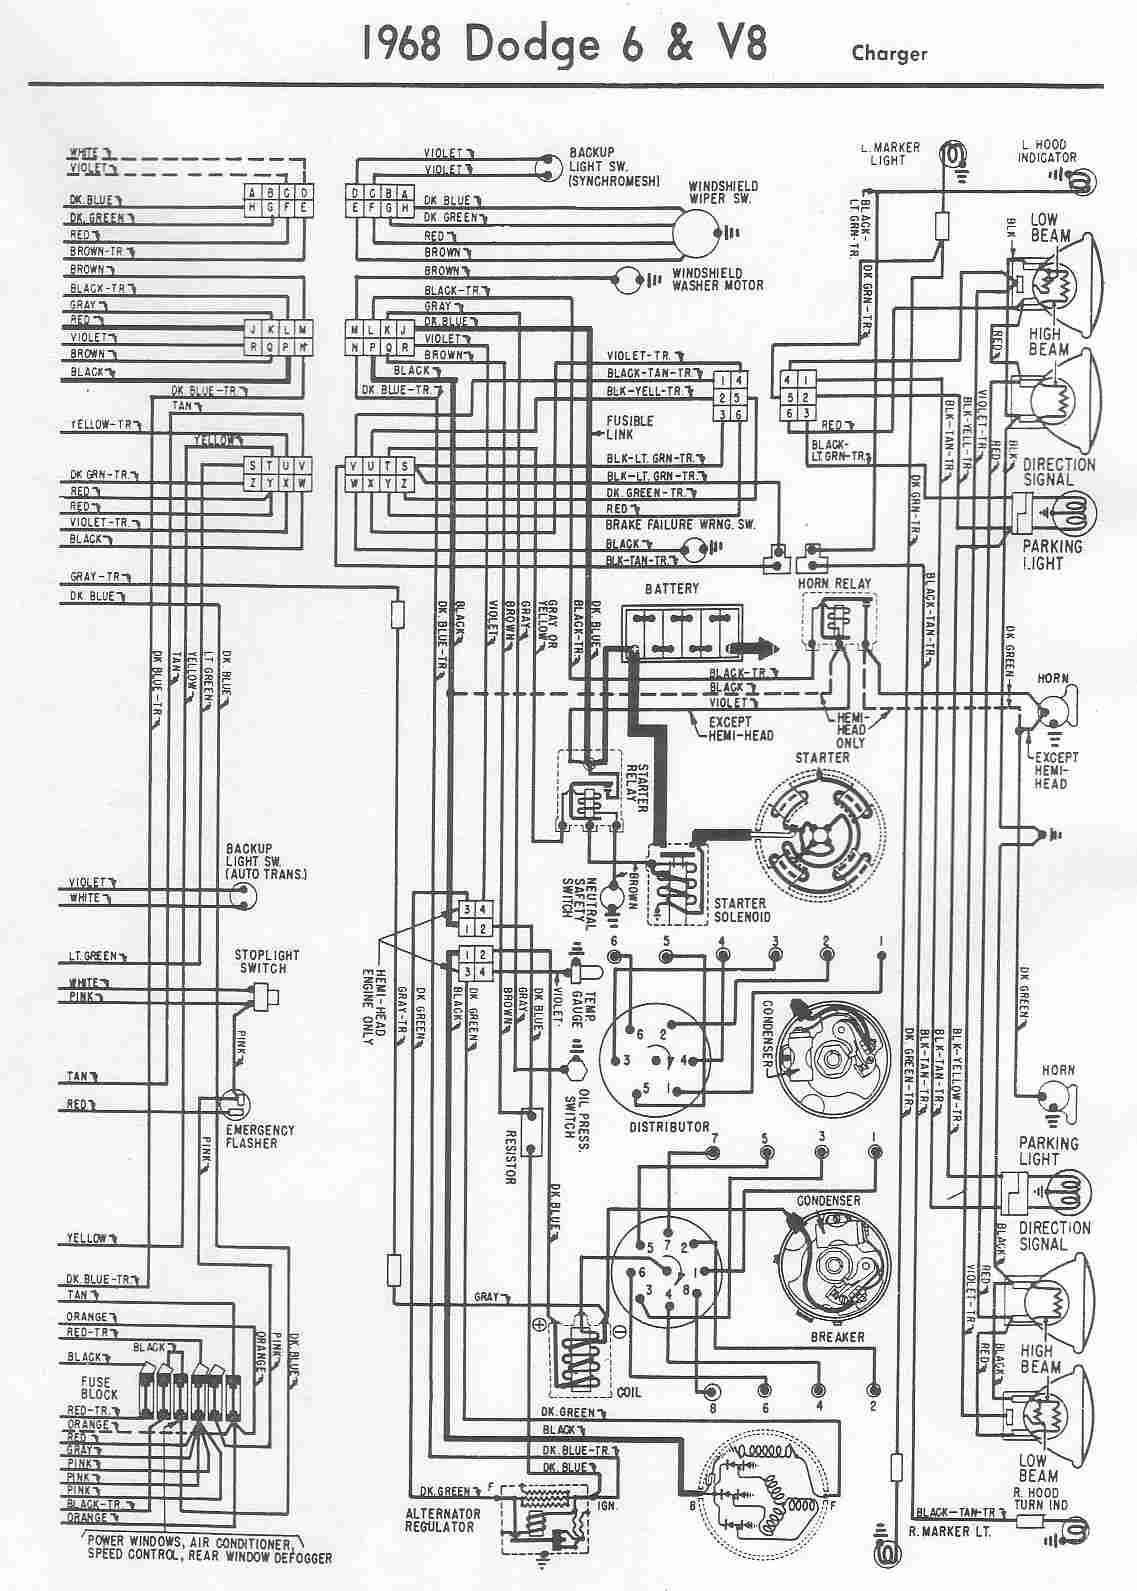 charger electrical wiring diagram of 1968 dodge 6 and v8?t=1508404771 dodge car manuals, wiring diagrams pdf & fault codes Multi Speed Blower Motor Wiring at panicattacktreatment.co